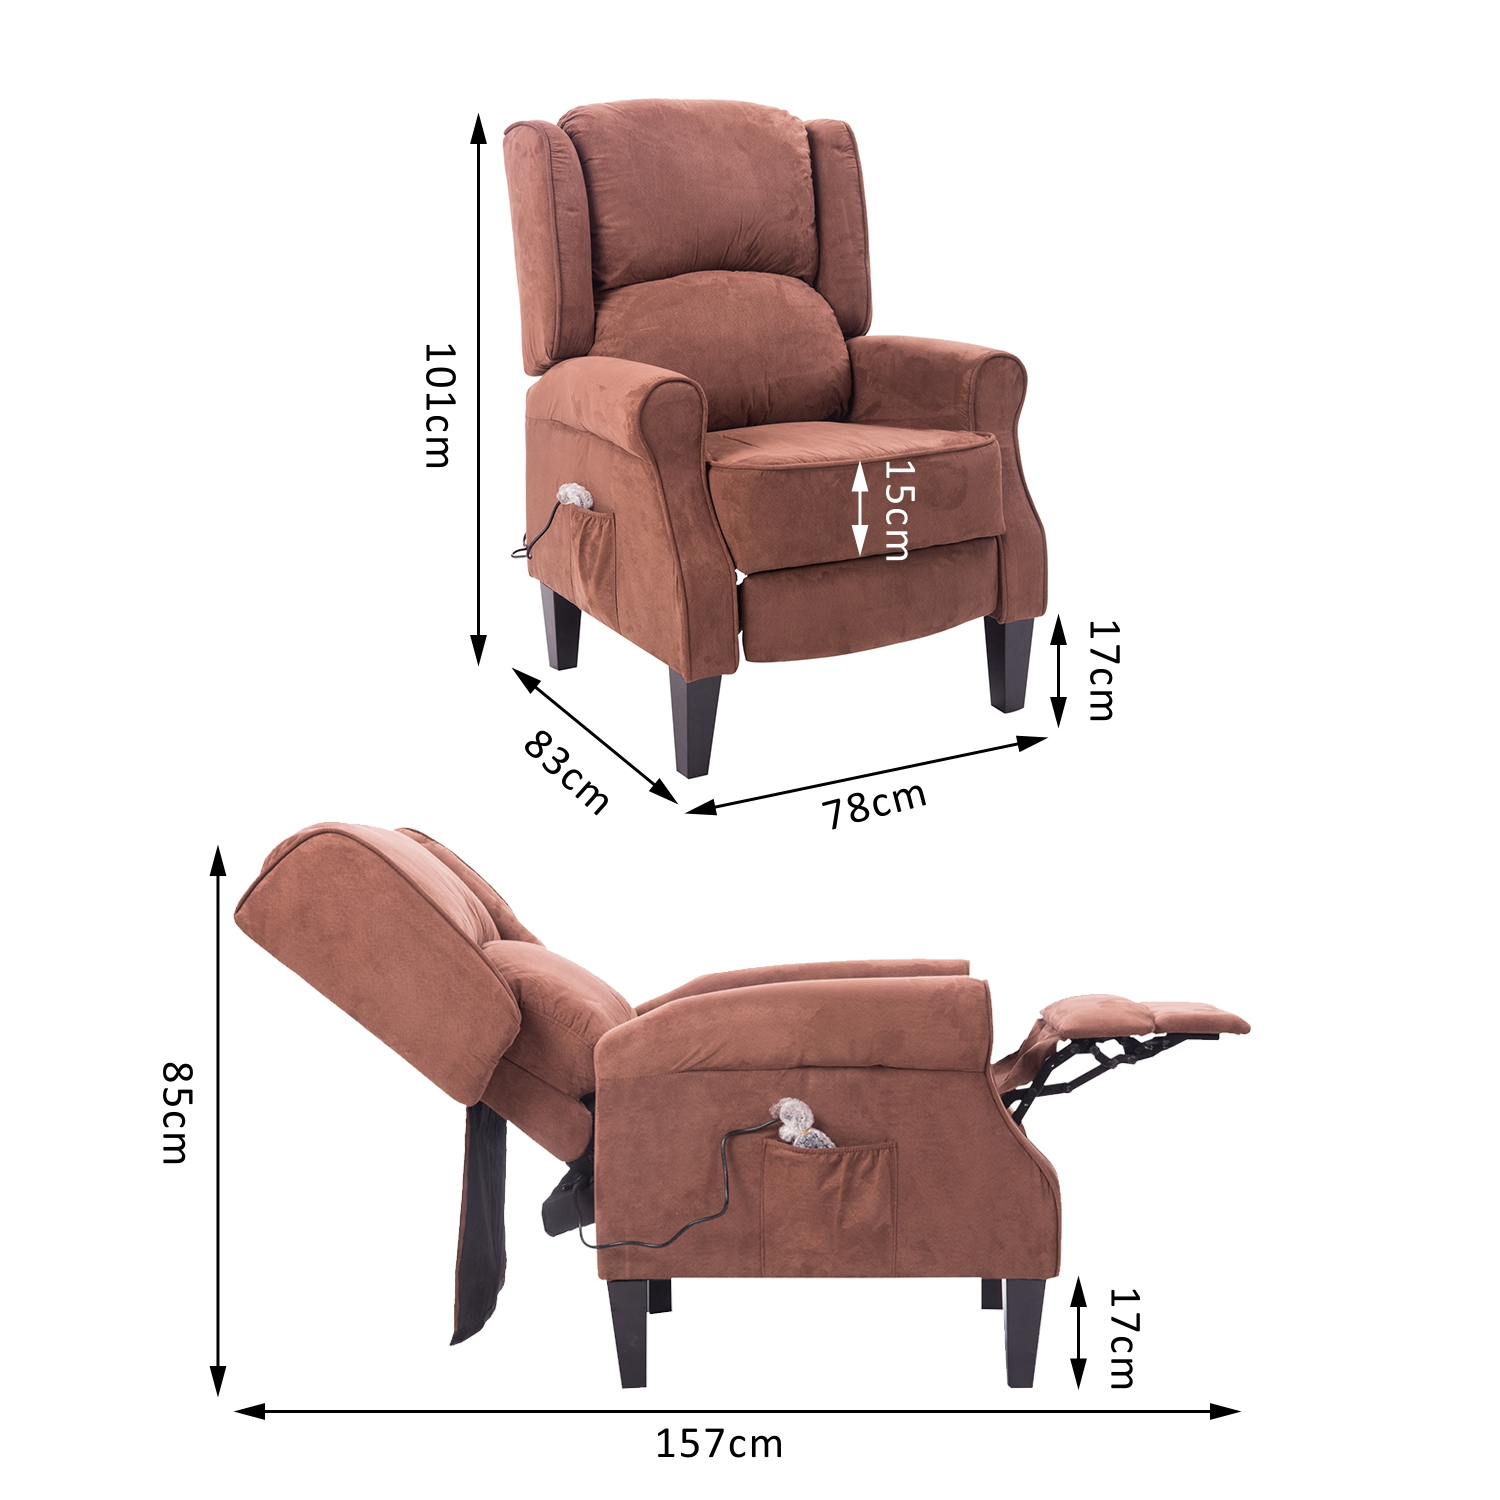 Recliner replacement parts living room ashley furniture for Adjustment bracket for chaise lounge